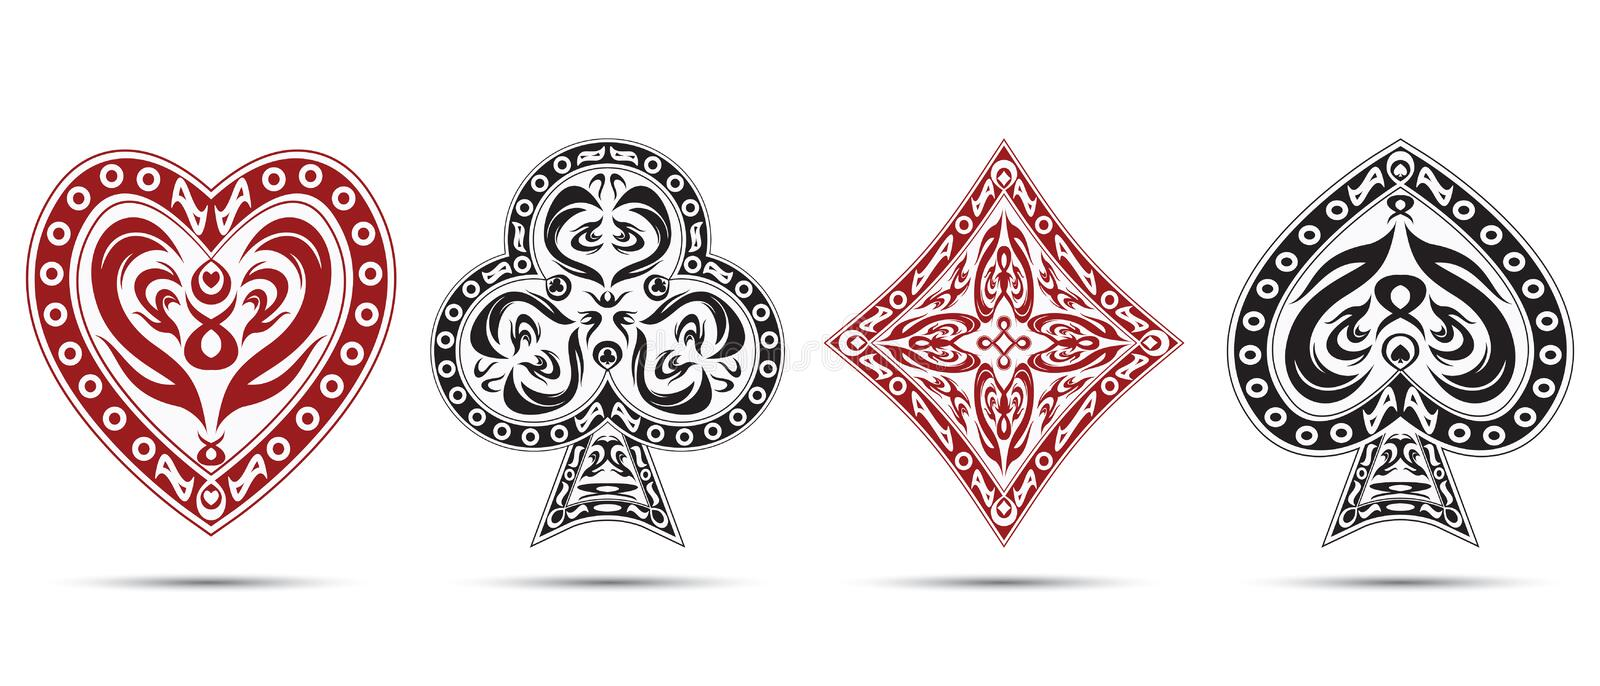 Spades, hearts, diamonds, clubs poker cards symbols isolated on white background vector illustration